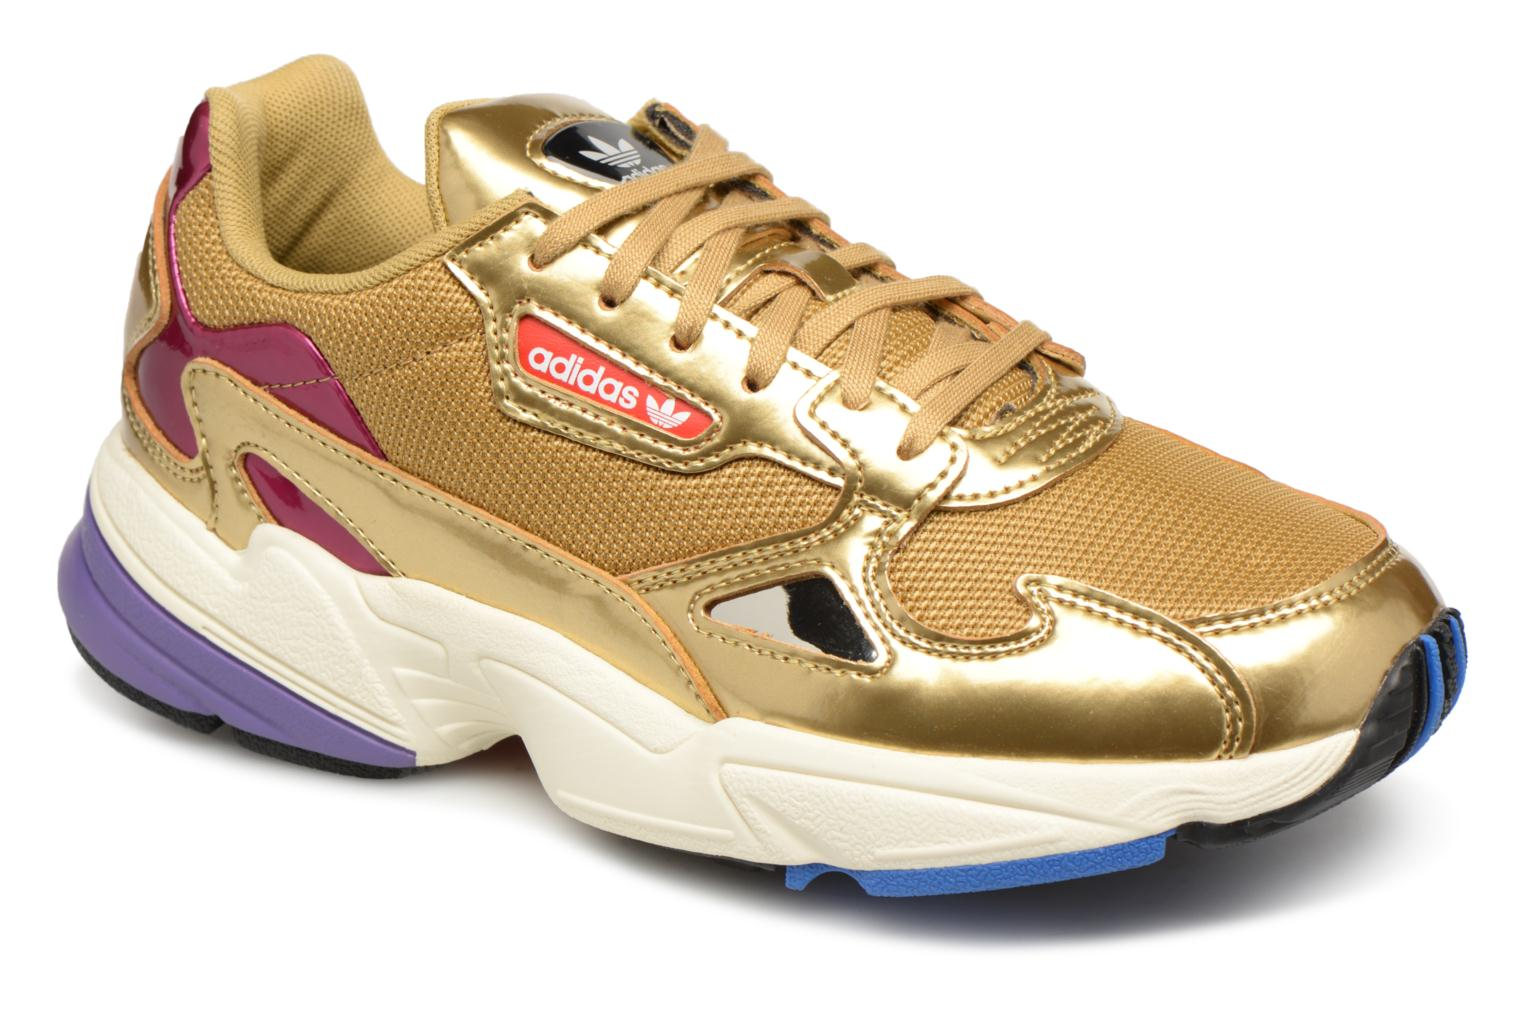 Adidas Originals Falcon W Baskets Basses Ormeta/Ormeta/Blacas